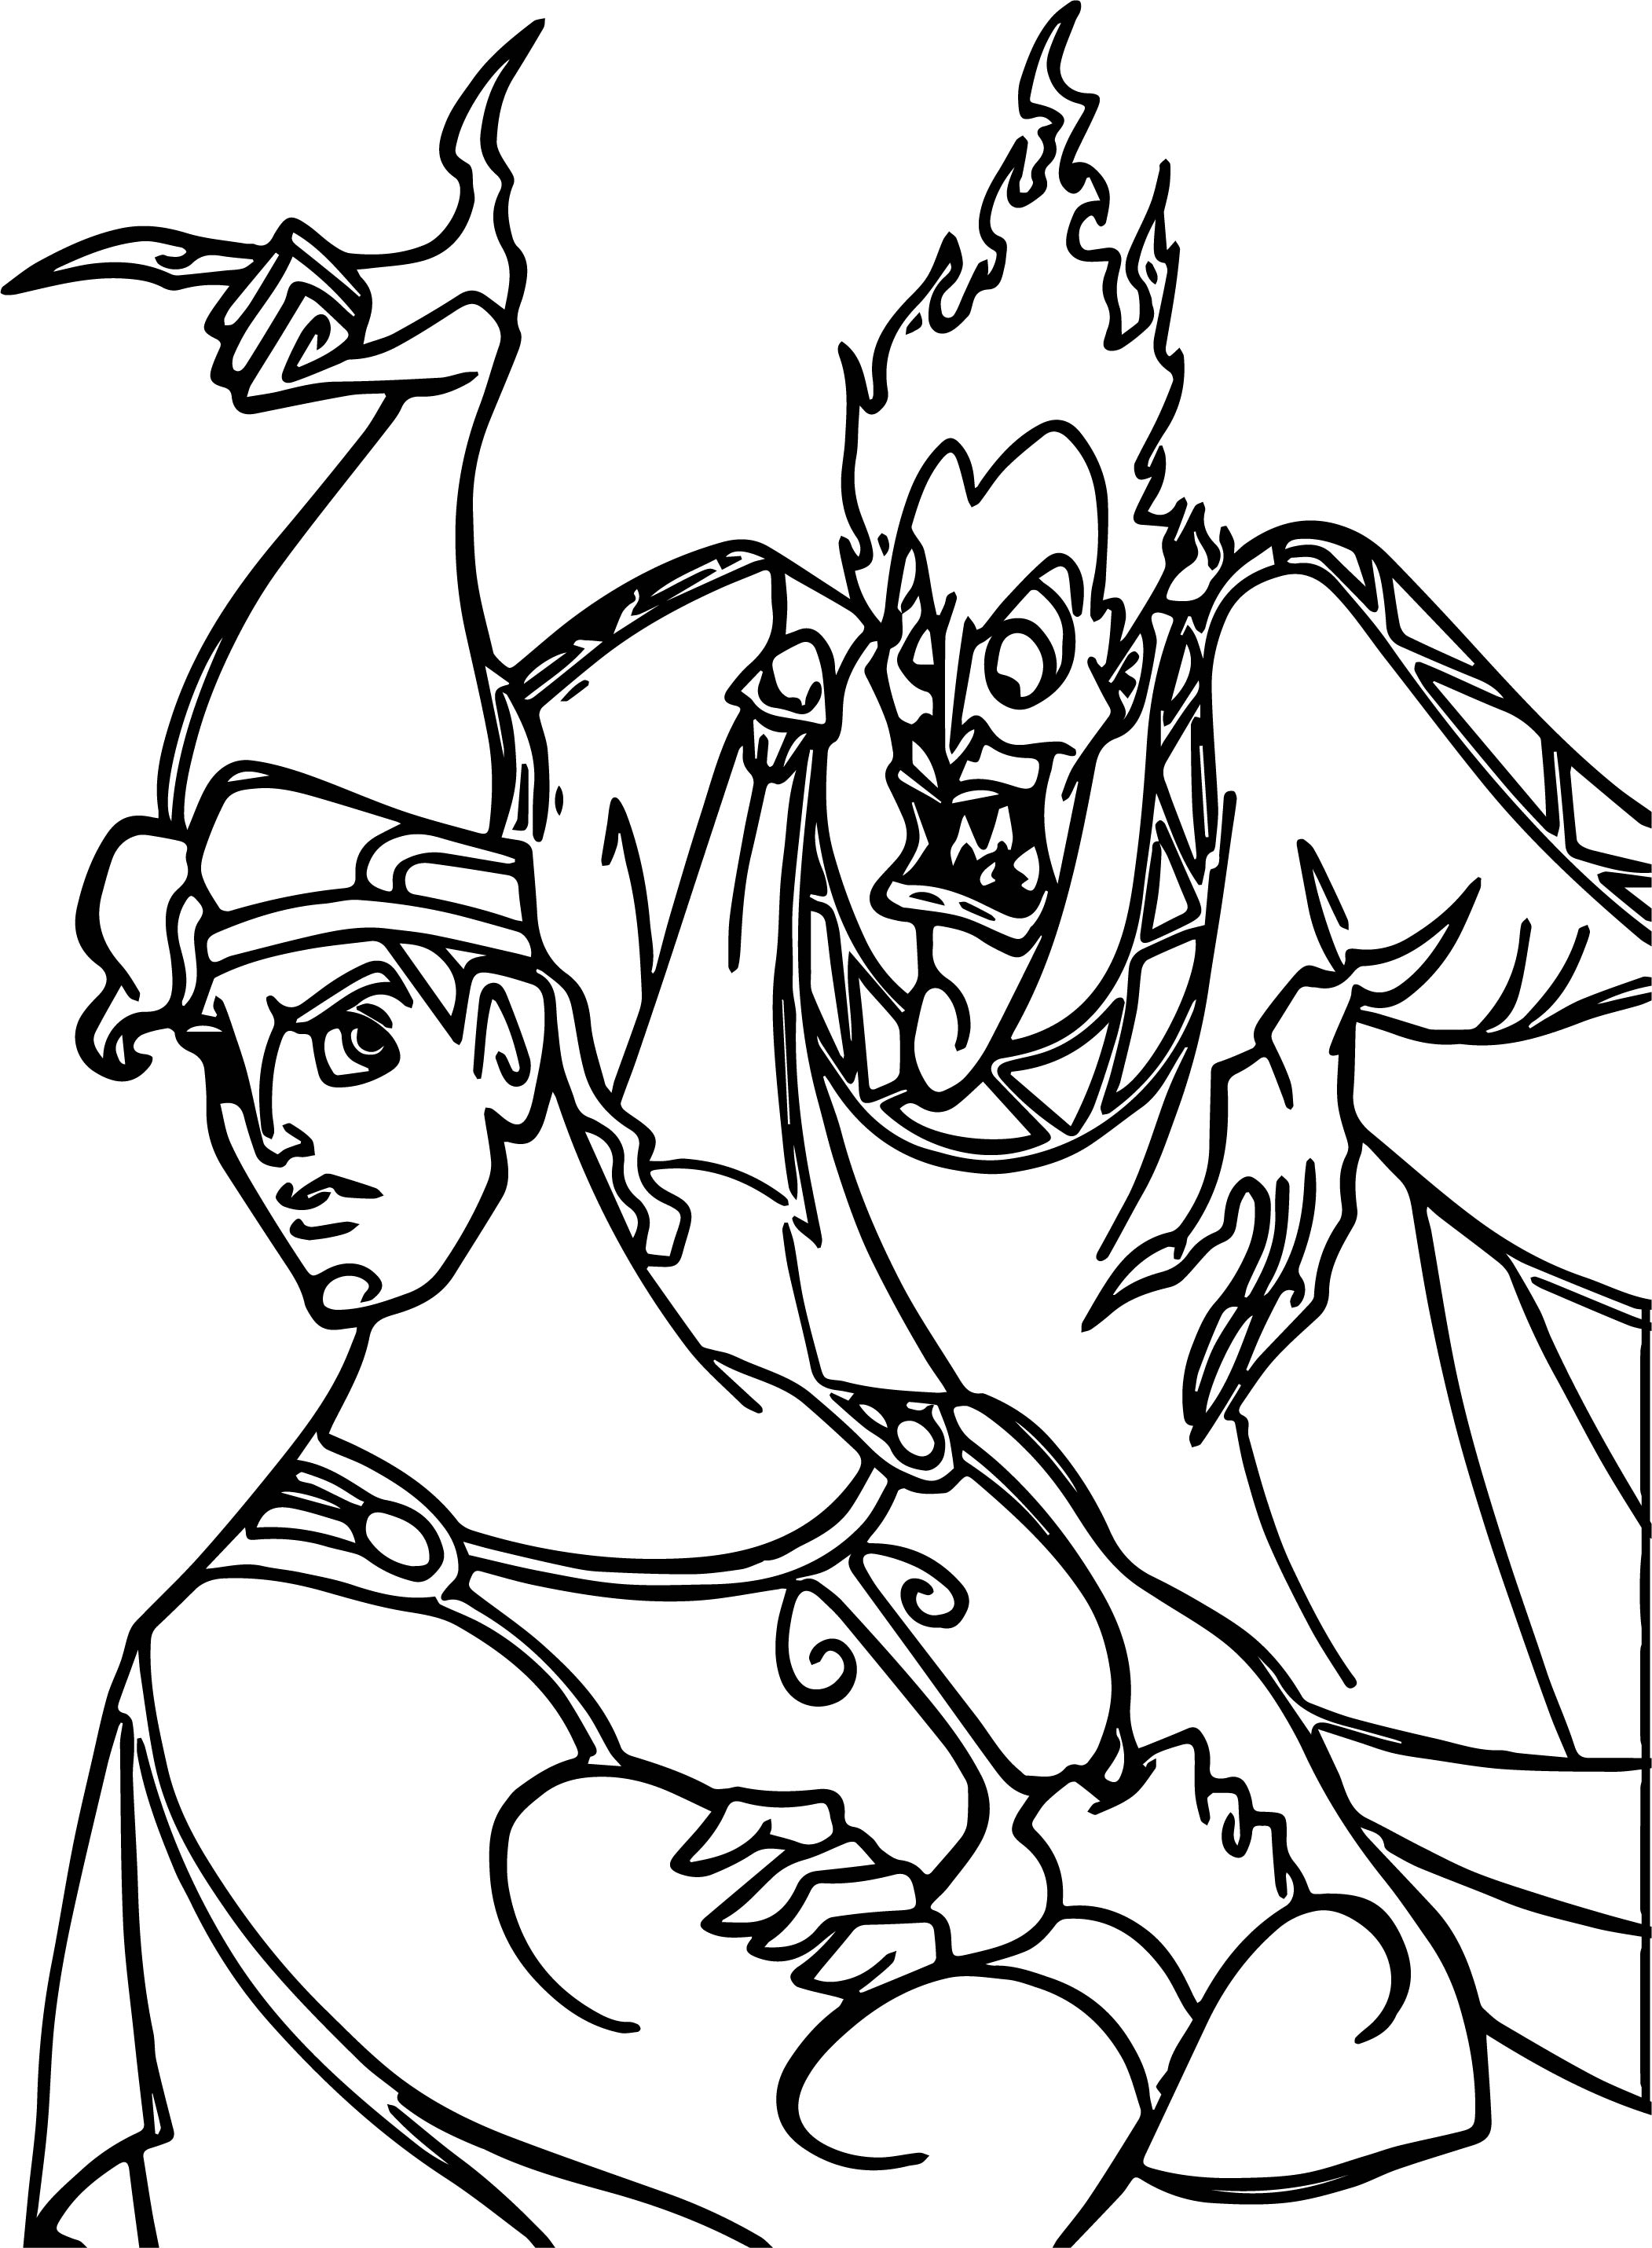 Hercules No Offer Coloring Pages